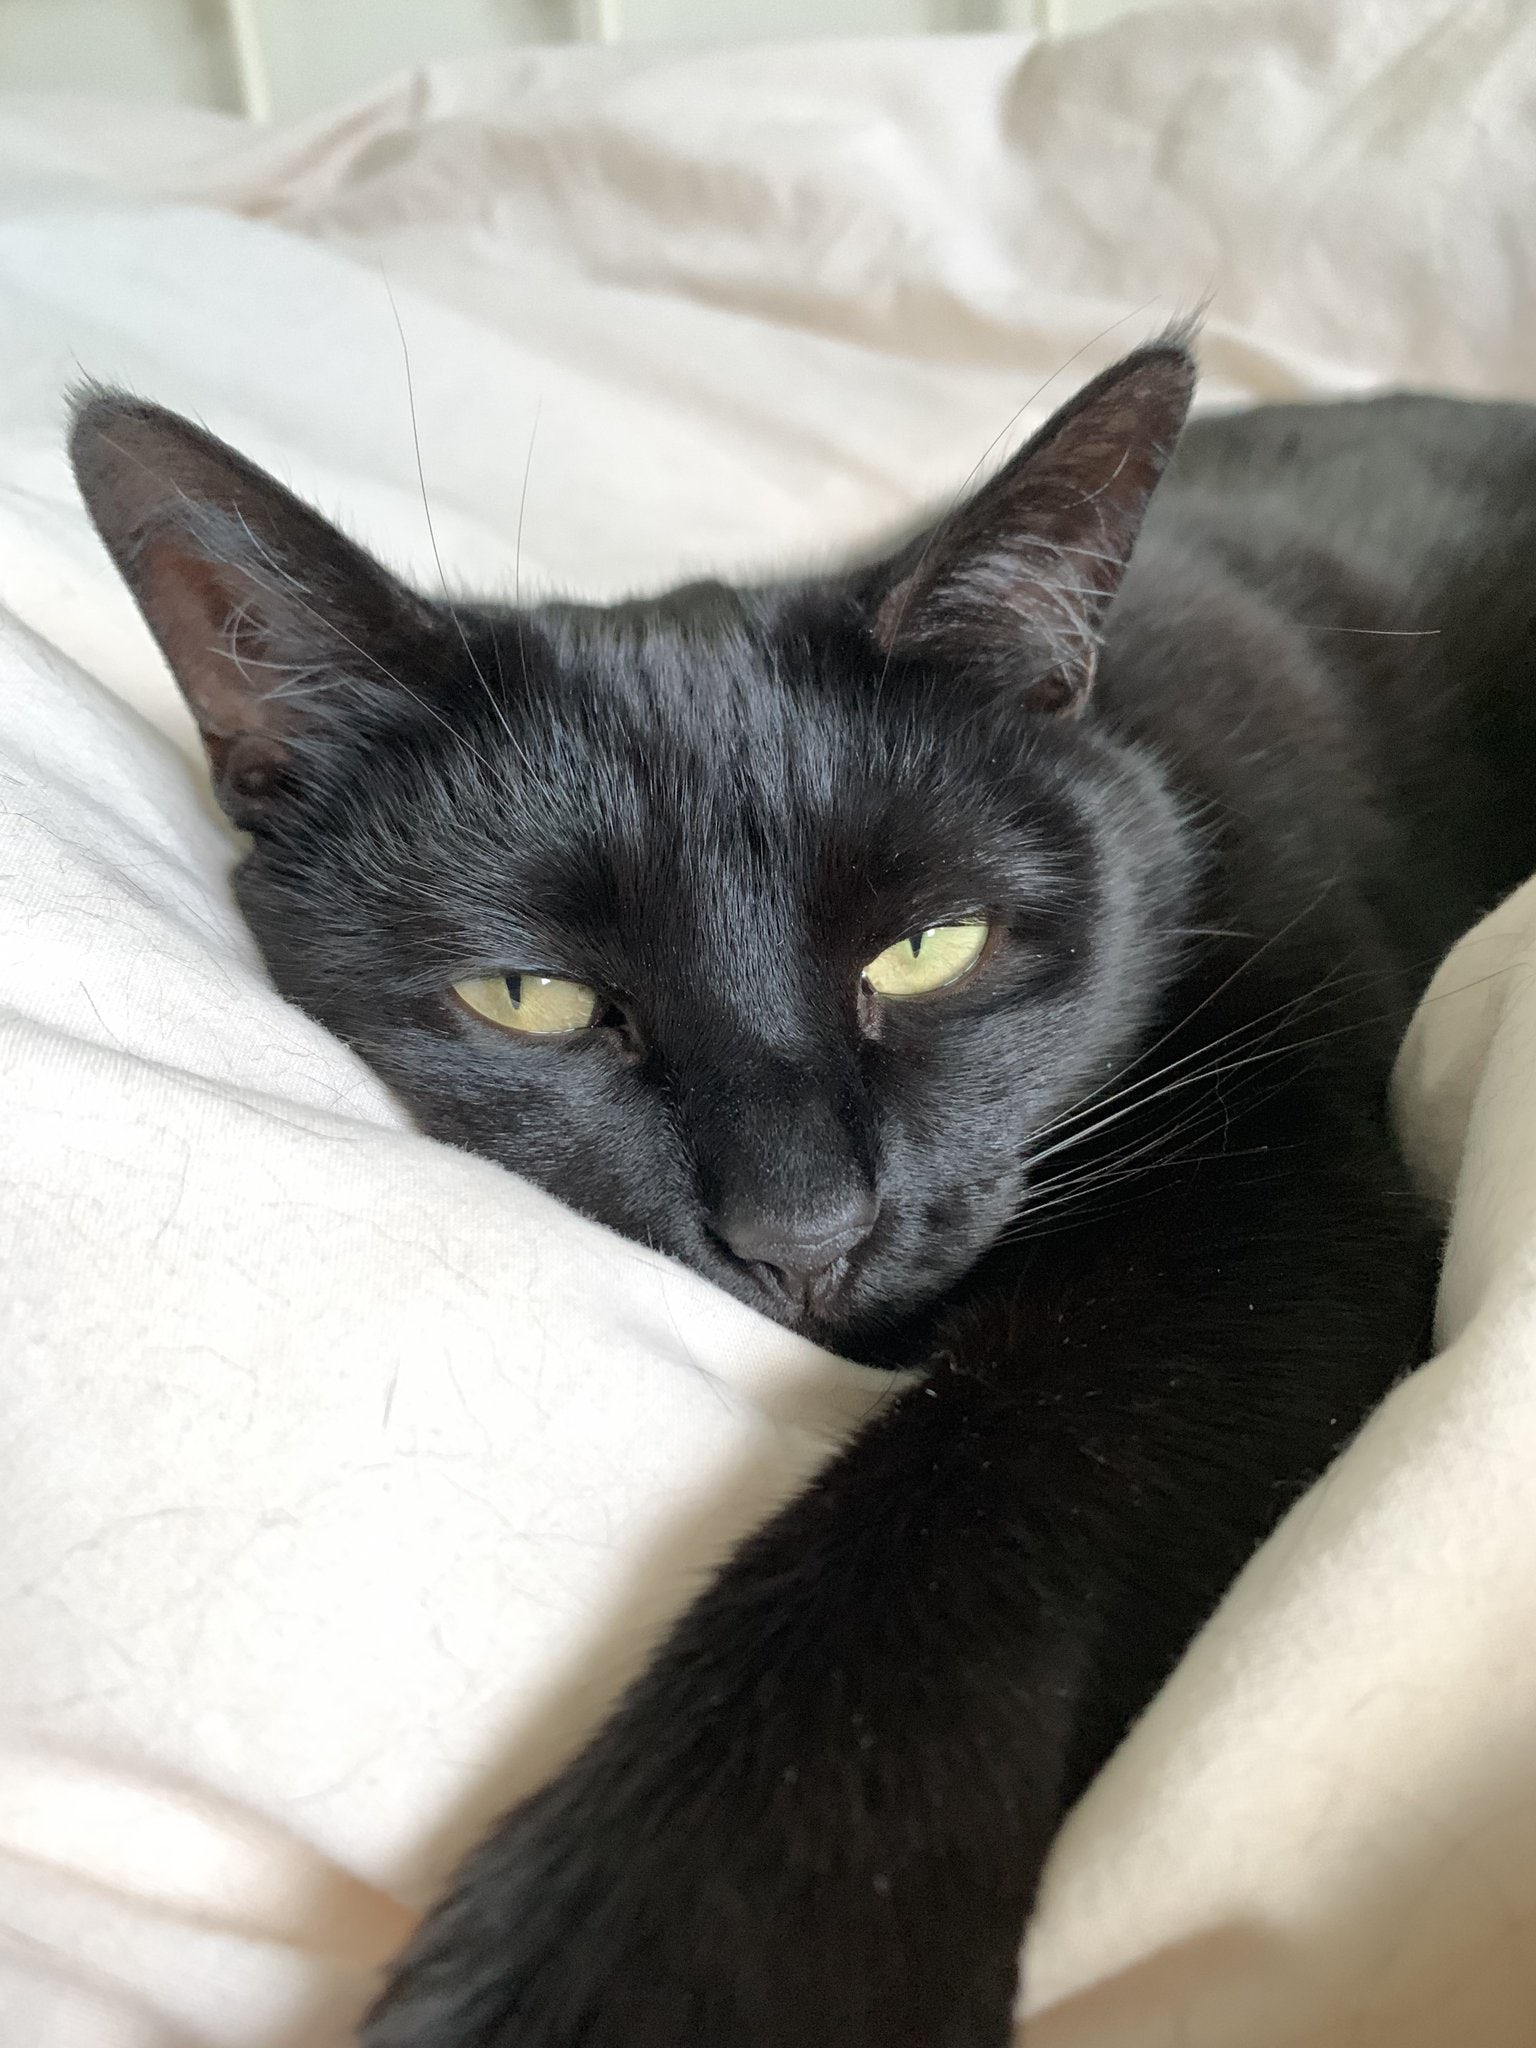 A black cat very snuggled up on a cream blanked